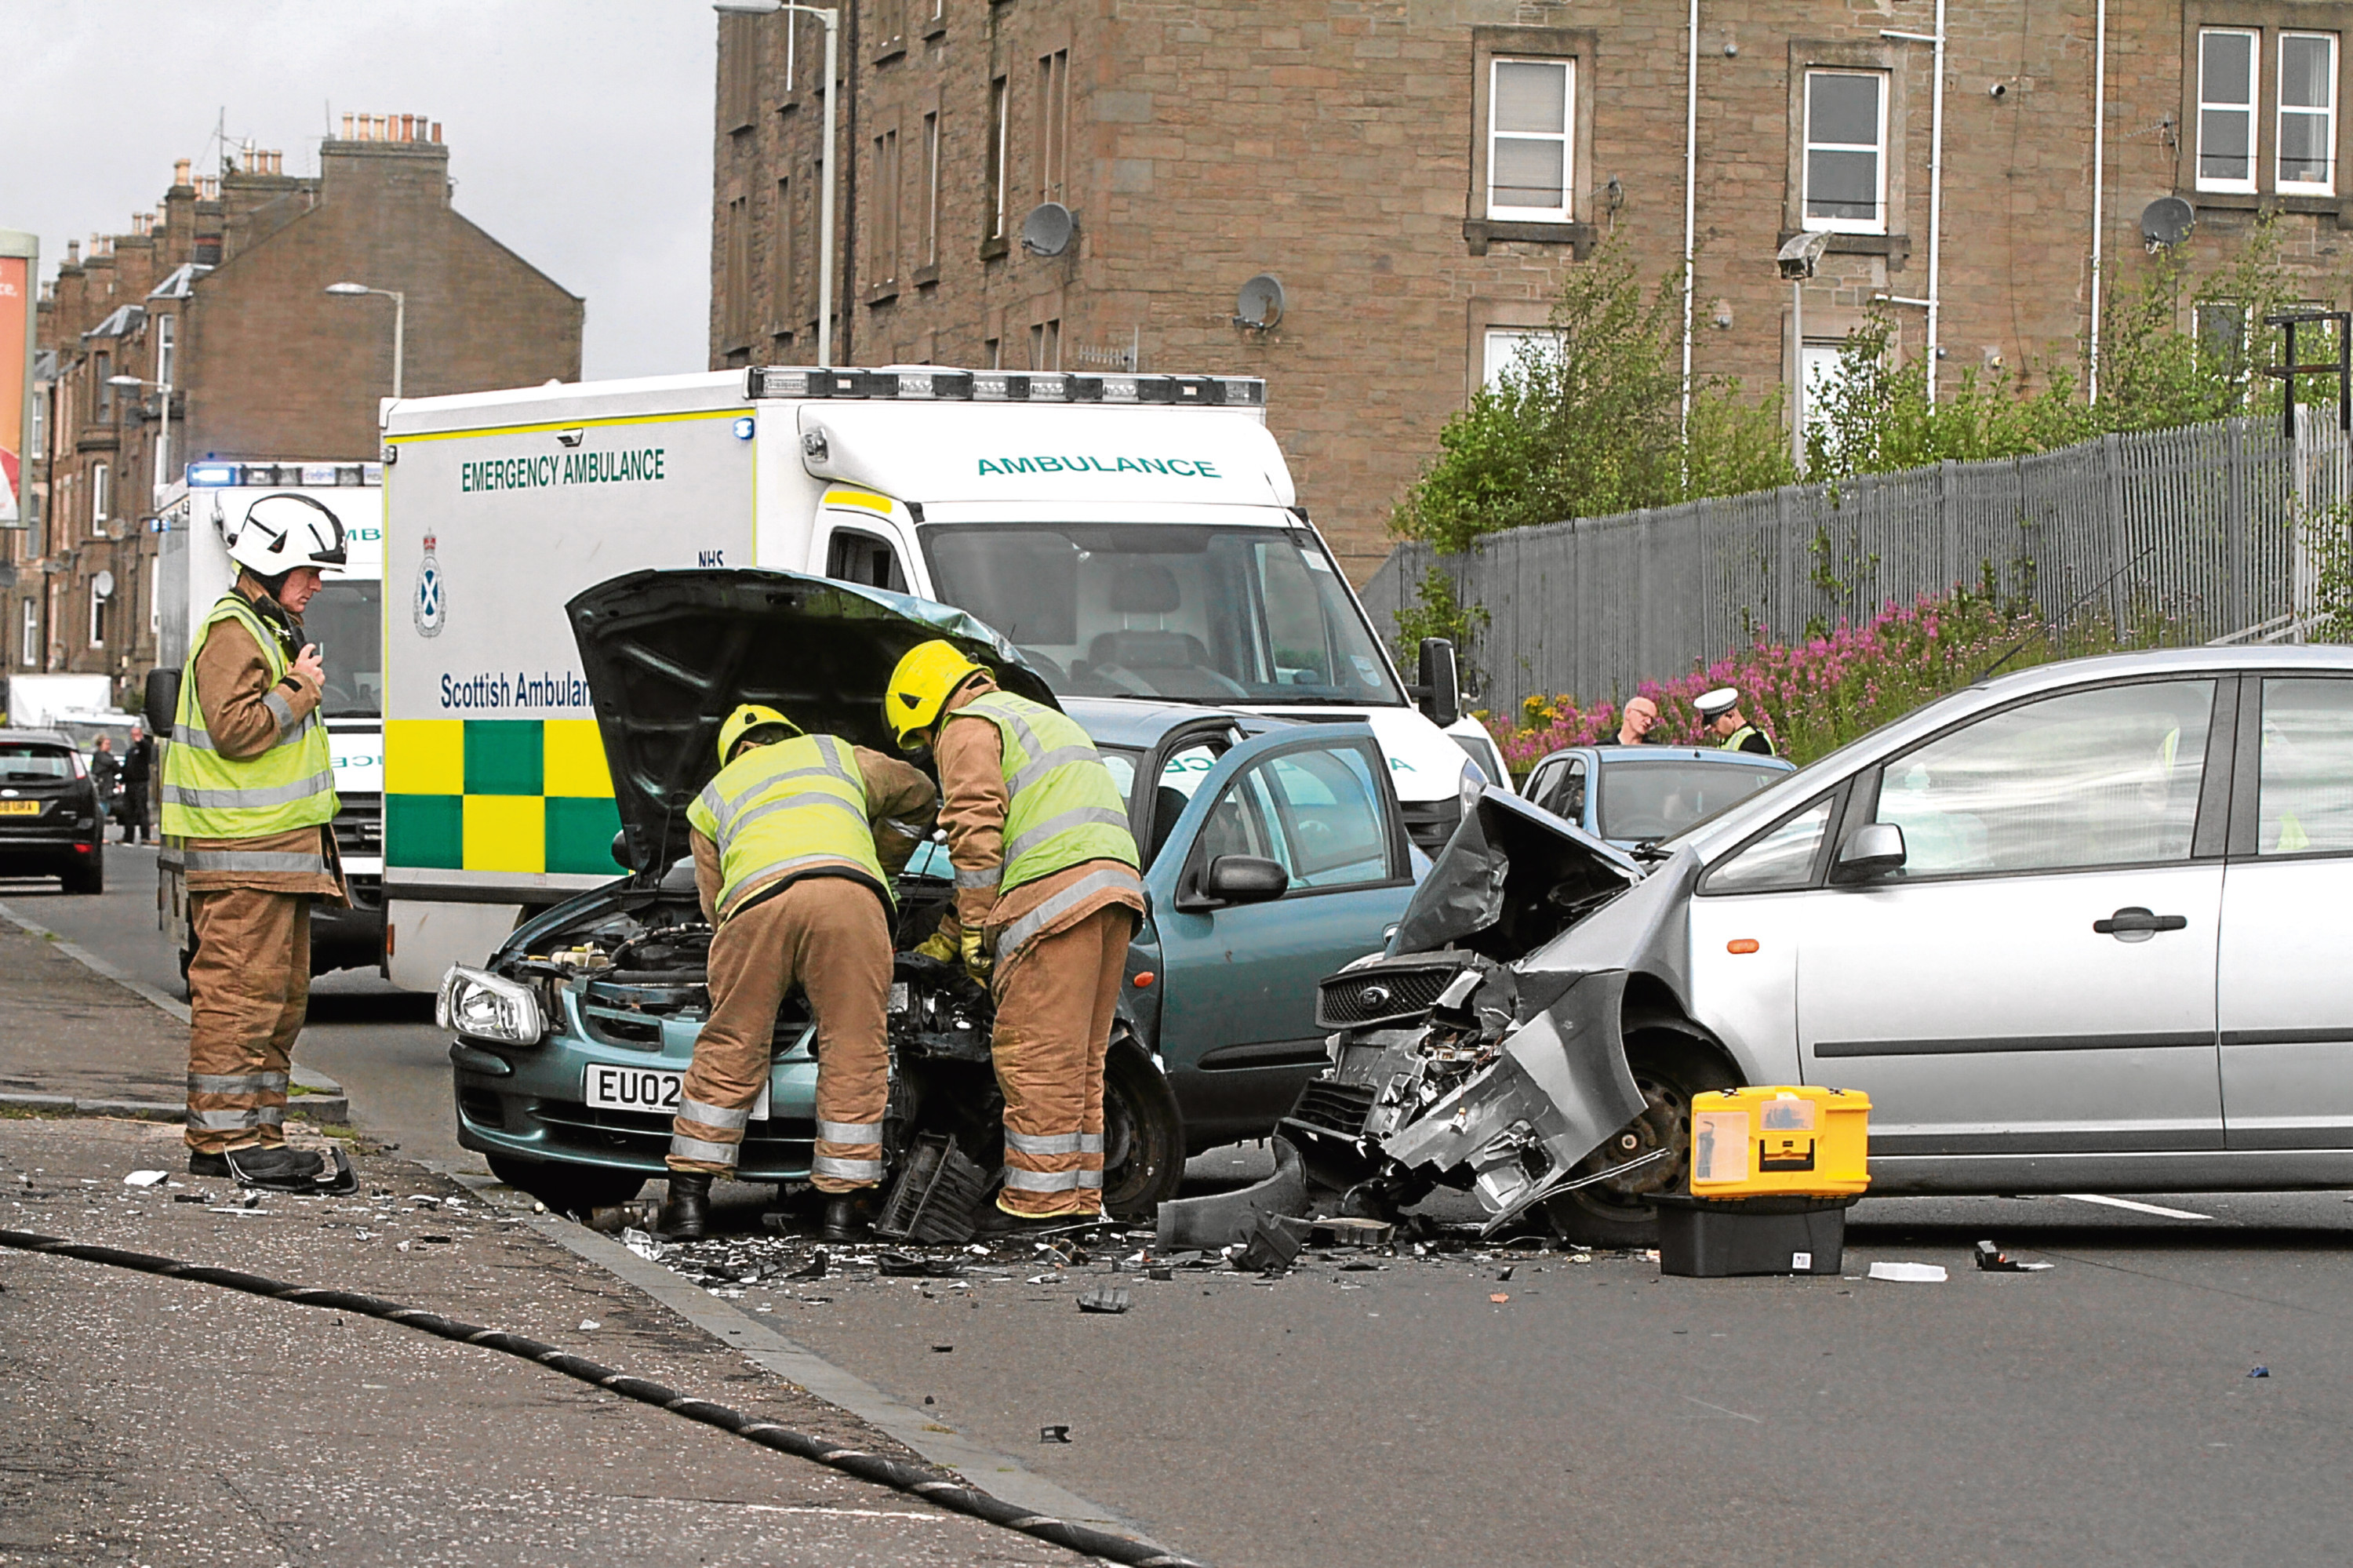 Injuries from road traffic collisions in Dundee have fallen by two thirds.